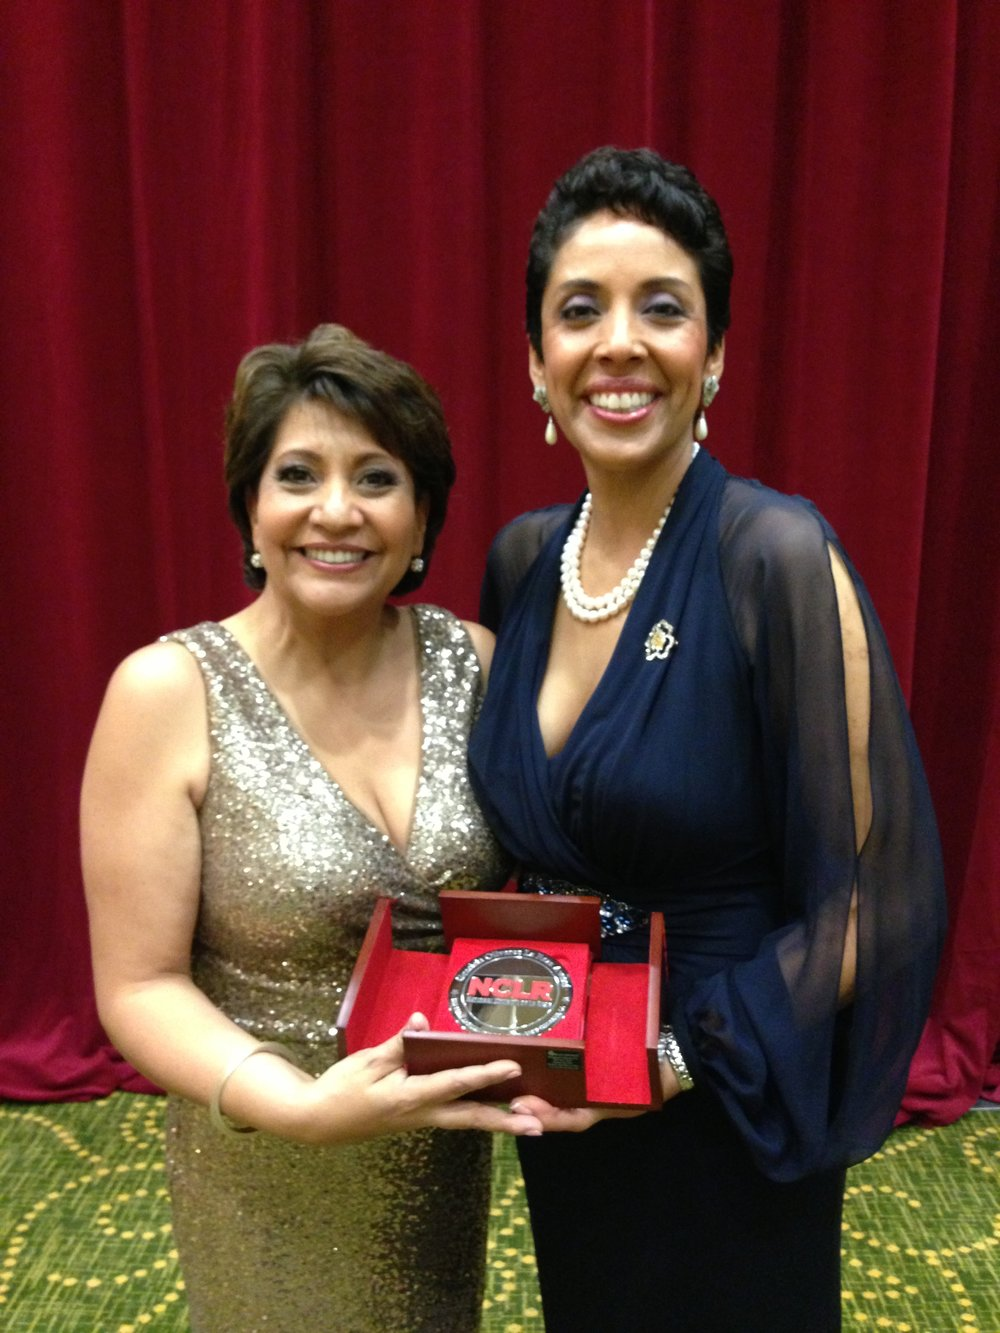 Janet Murguia, National Council of La Raza's President and CEO, Awarding Anna Maria Chávez